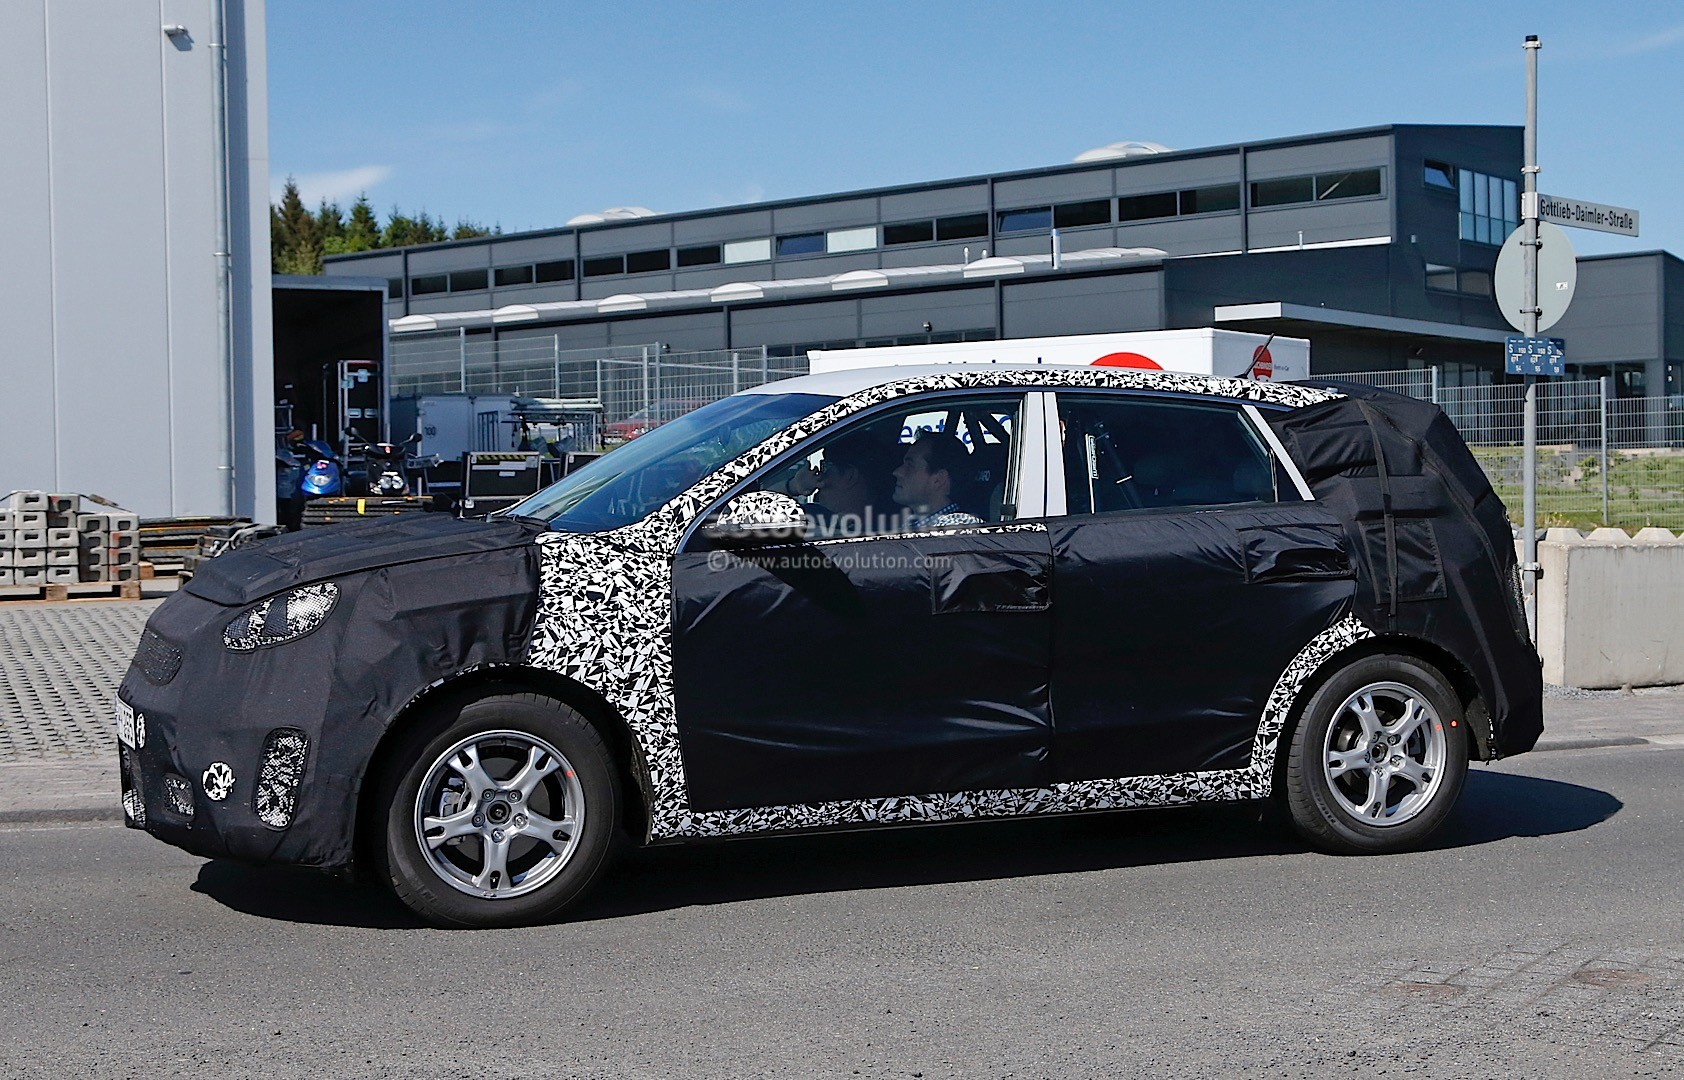 2016 - [Kia] Niro  Kia-kx3-niro-prototype-spied-in-germany-photo-gallery_12